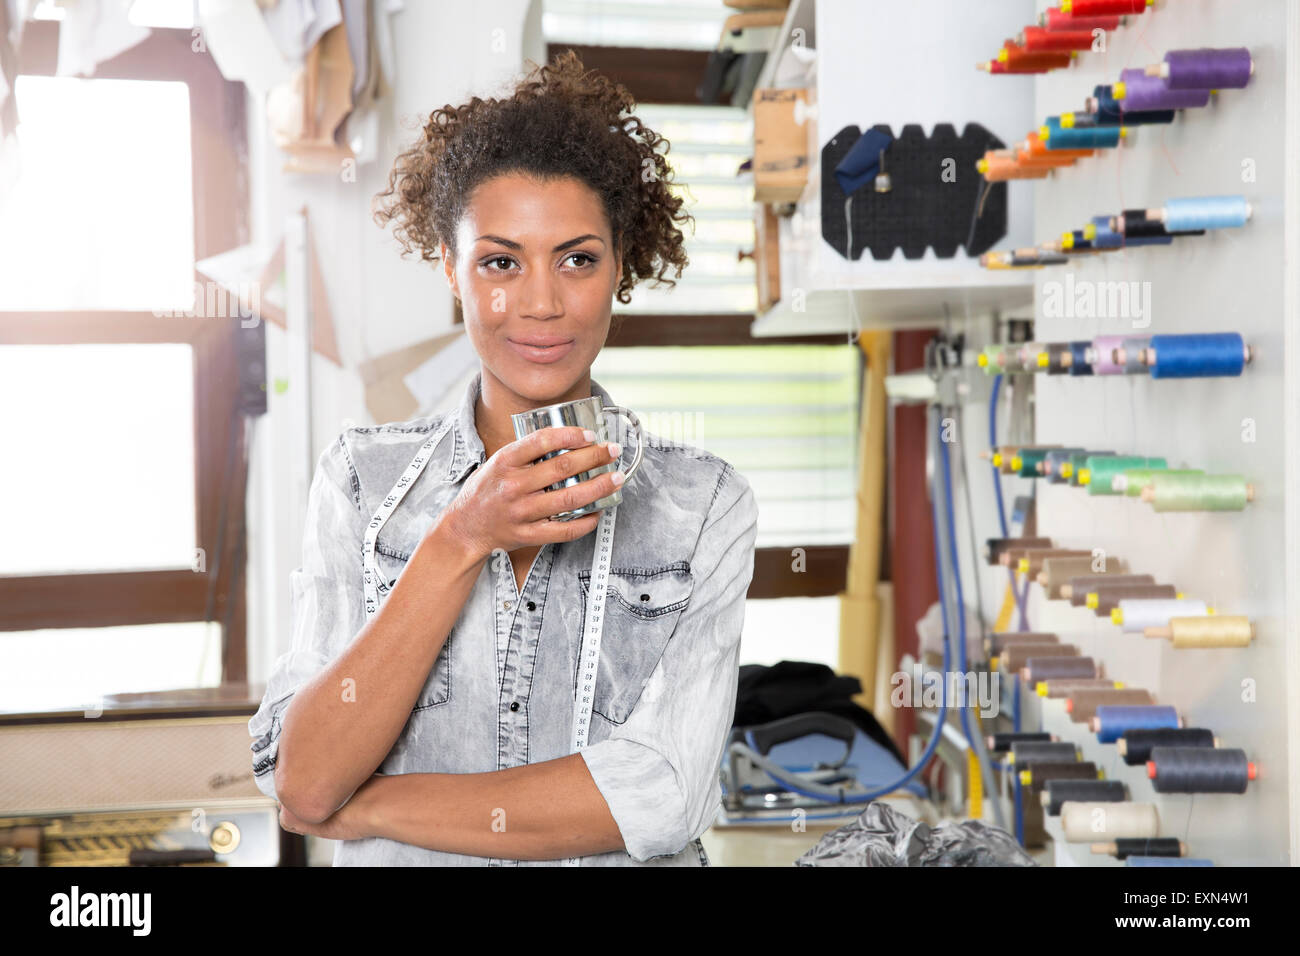 Young Fashion Designer Holding Coffee Cup Looking For Inspiration Stock Photo Alamy